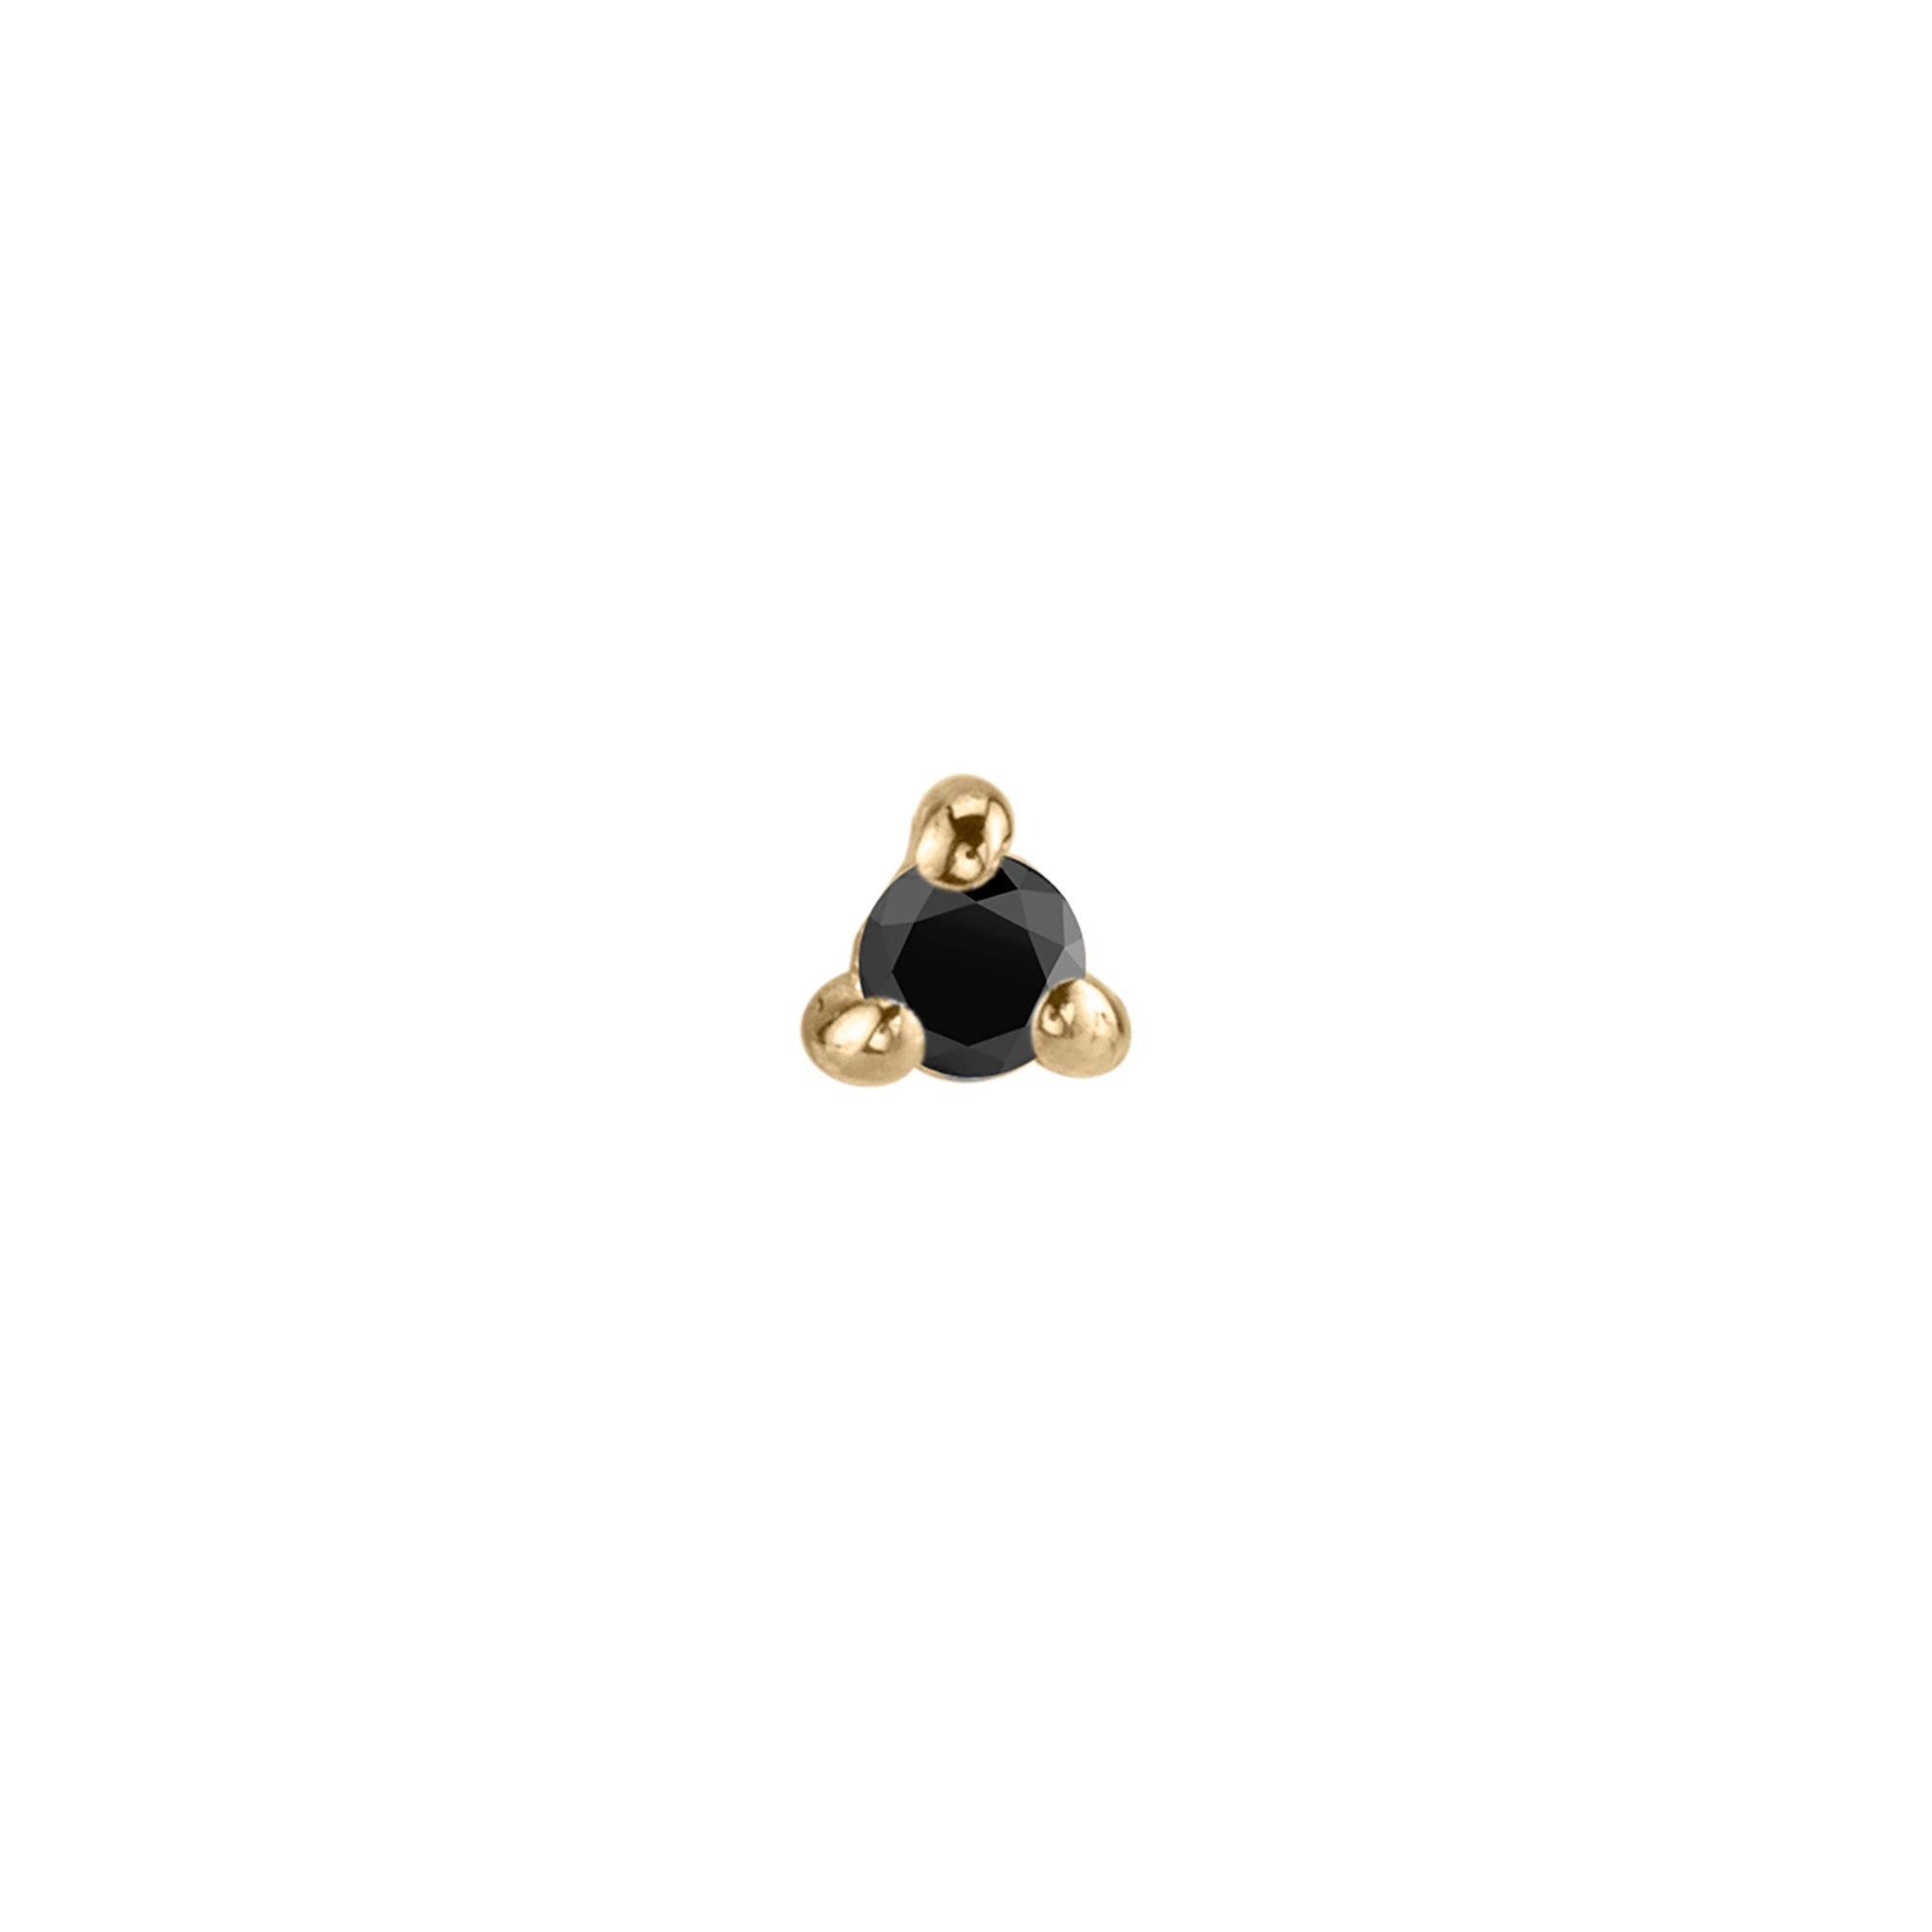 Black Diamond Mini Stud by Lizzie Mandler for Broken English Jewelry